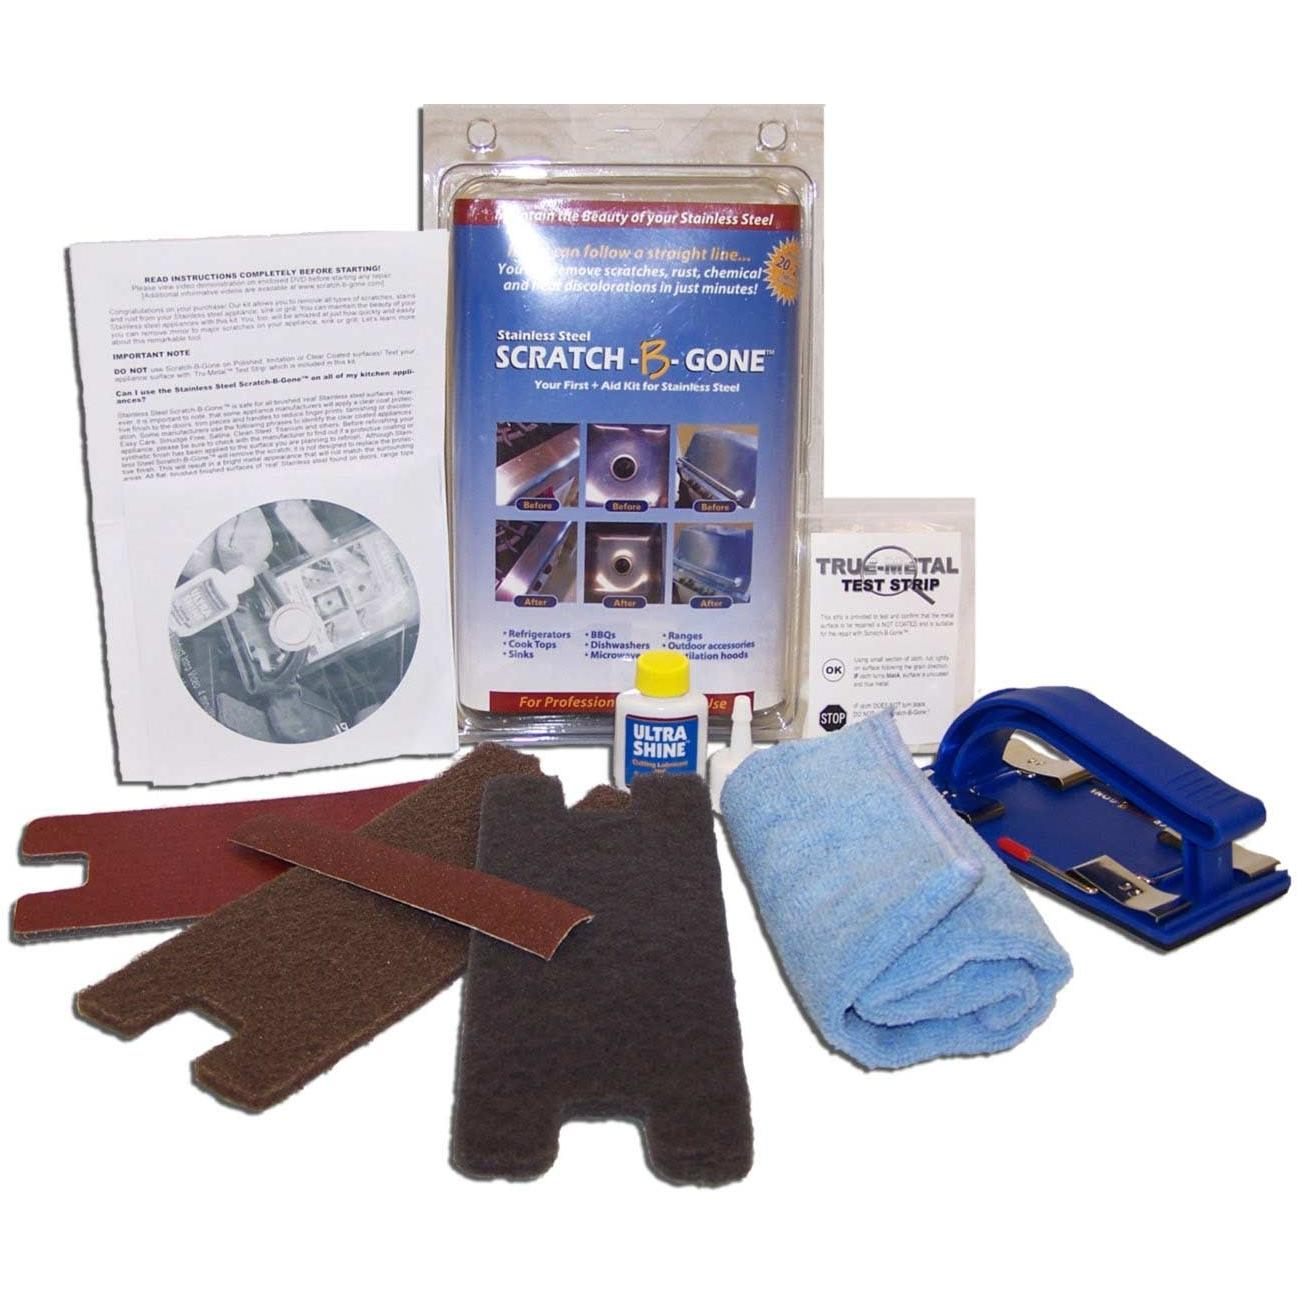 Scratch-B-Gone Home Scratch Remover Kit